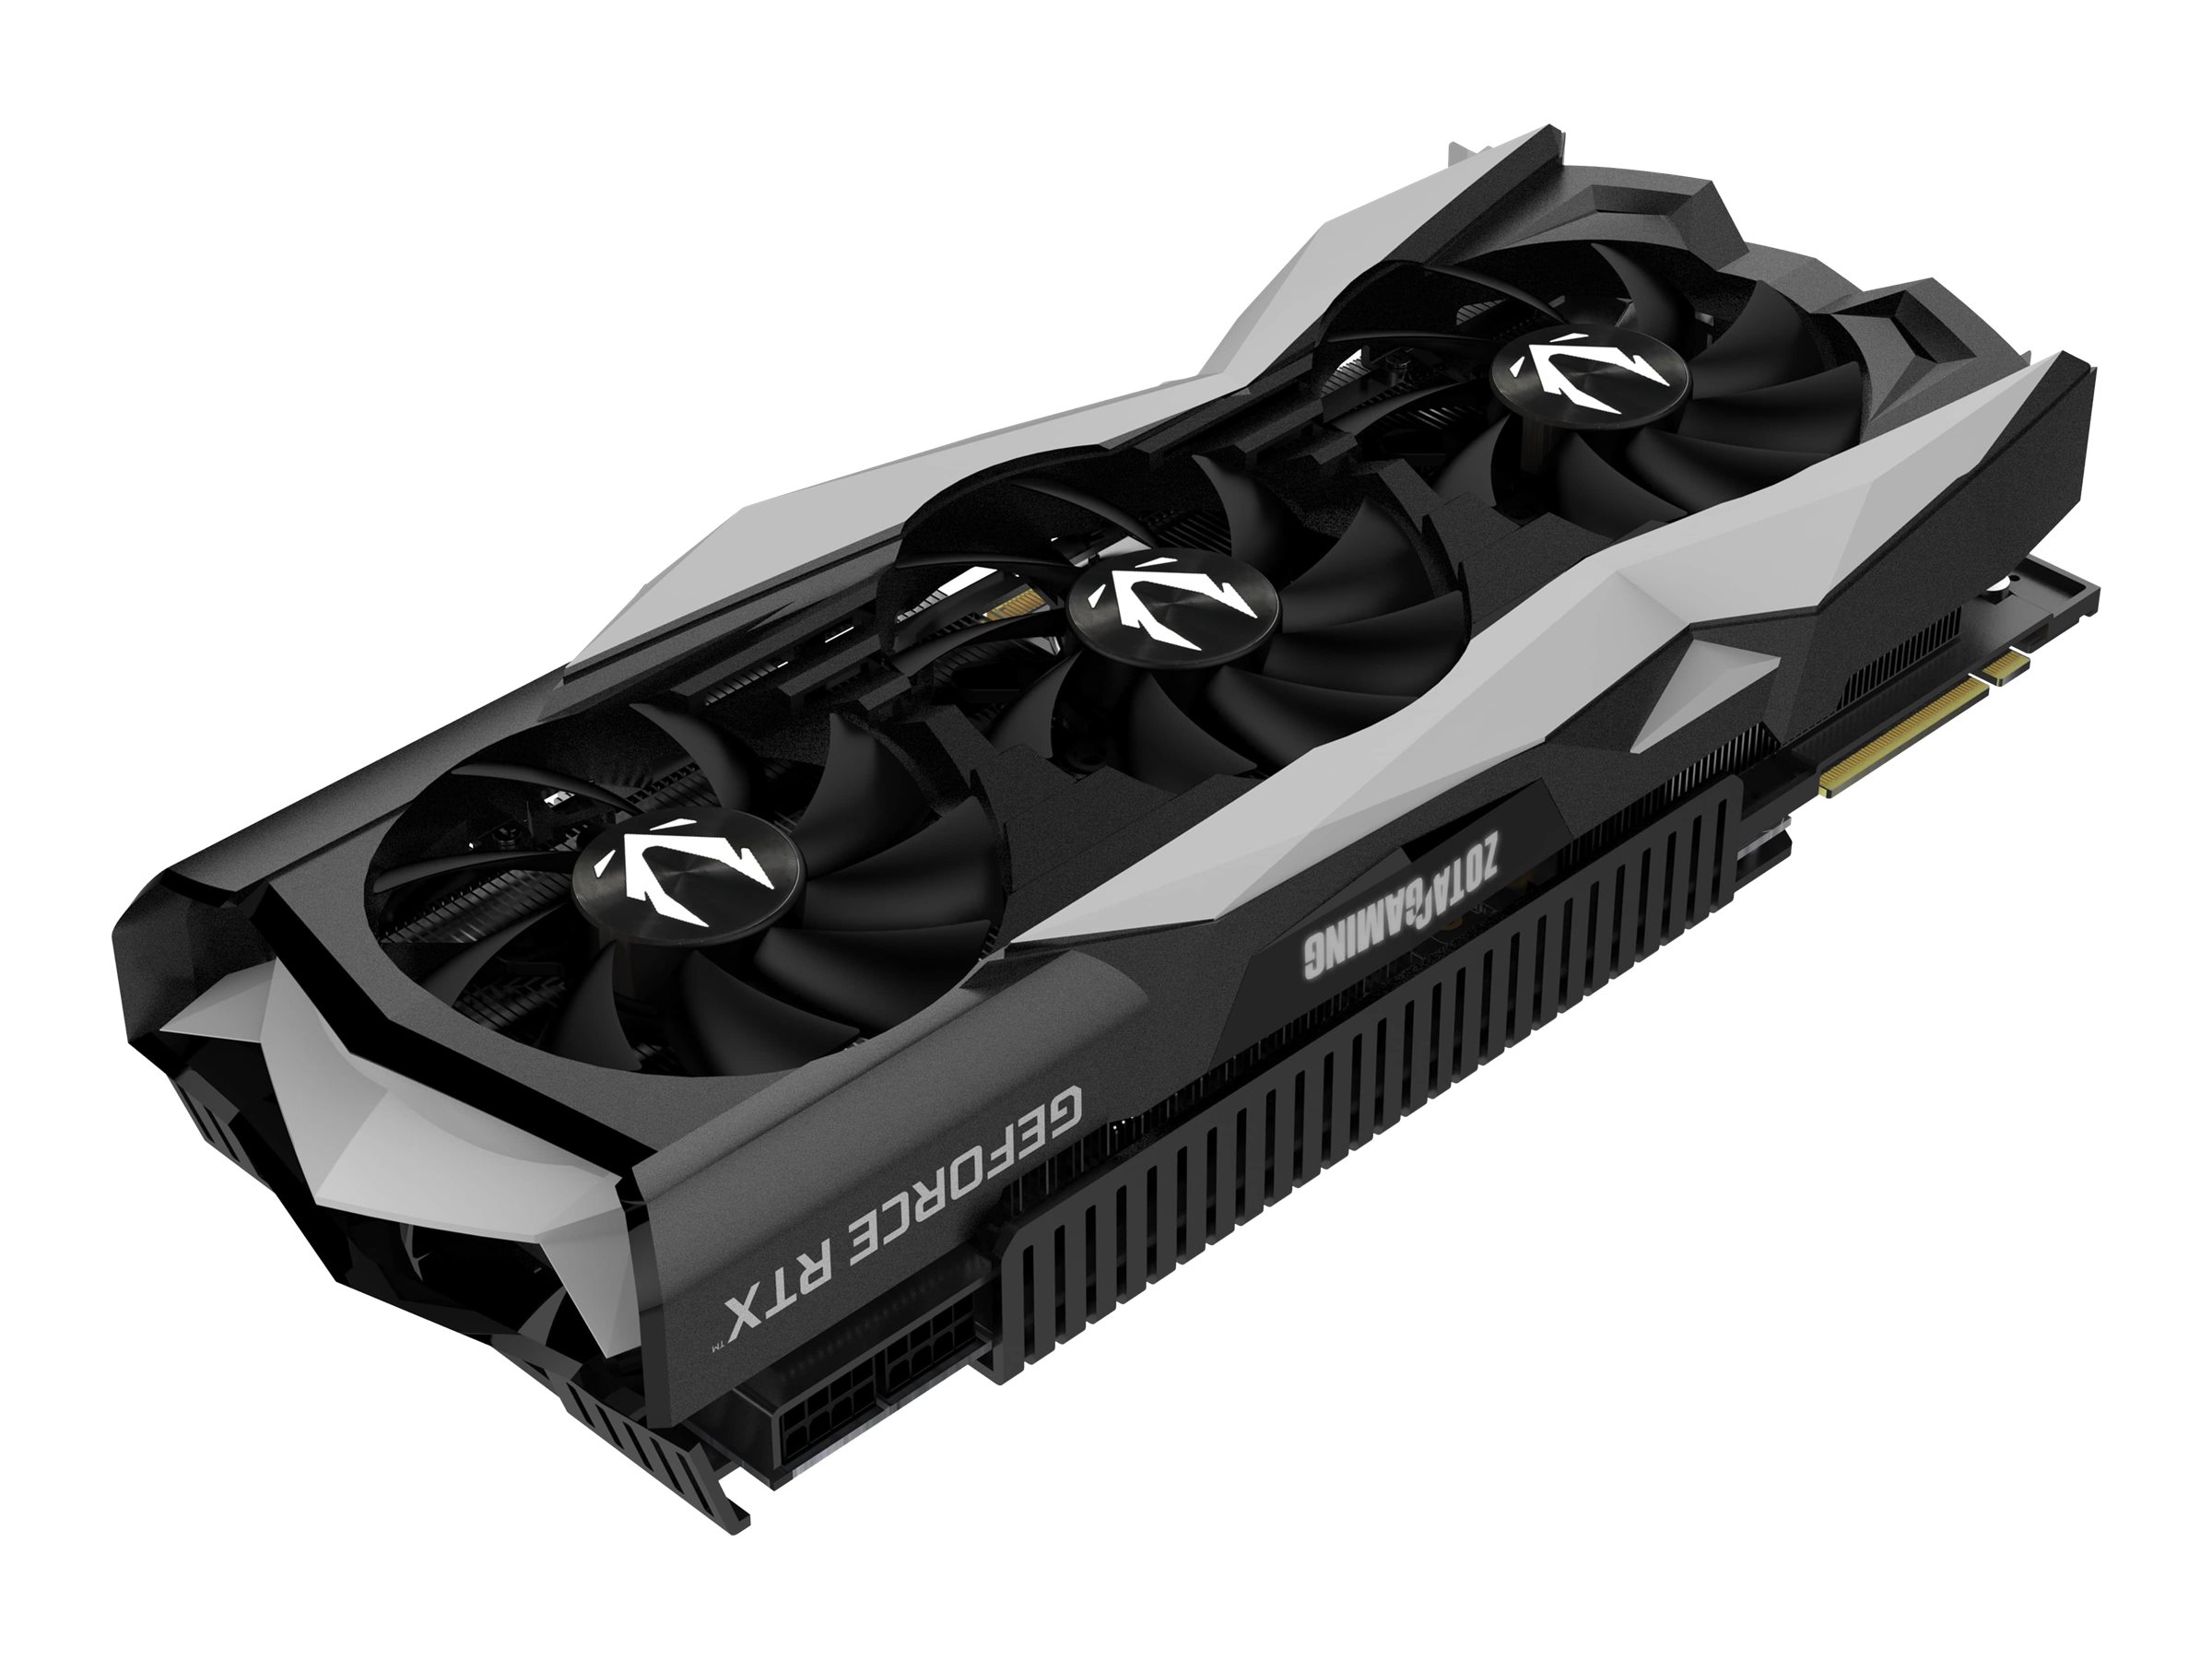 ZOTAC GAMING GeForce RTX 2080 AMP Extreme Core